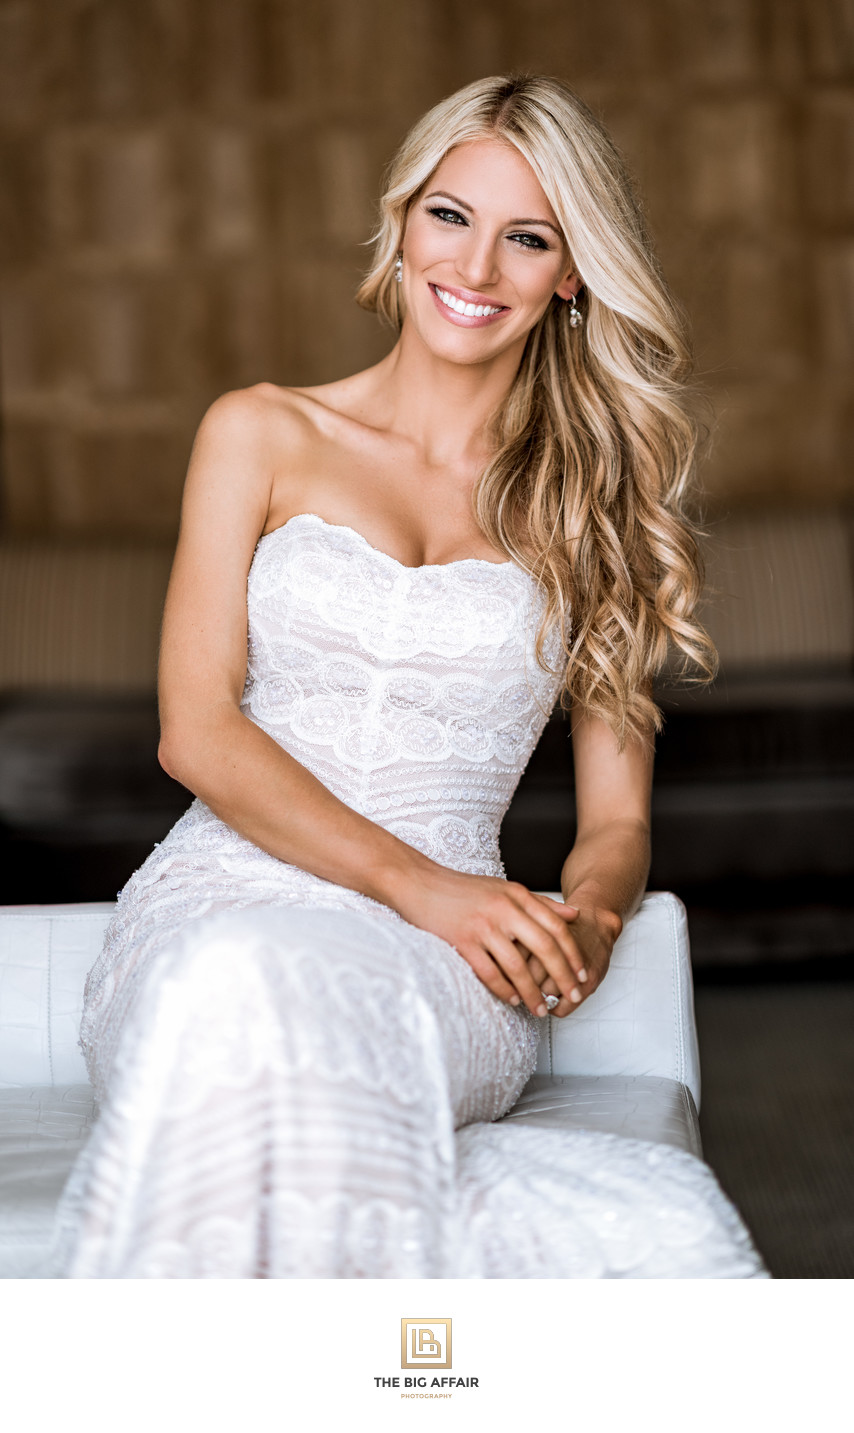 gorgeous blond hair bride smilling